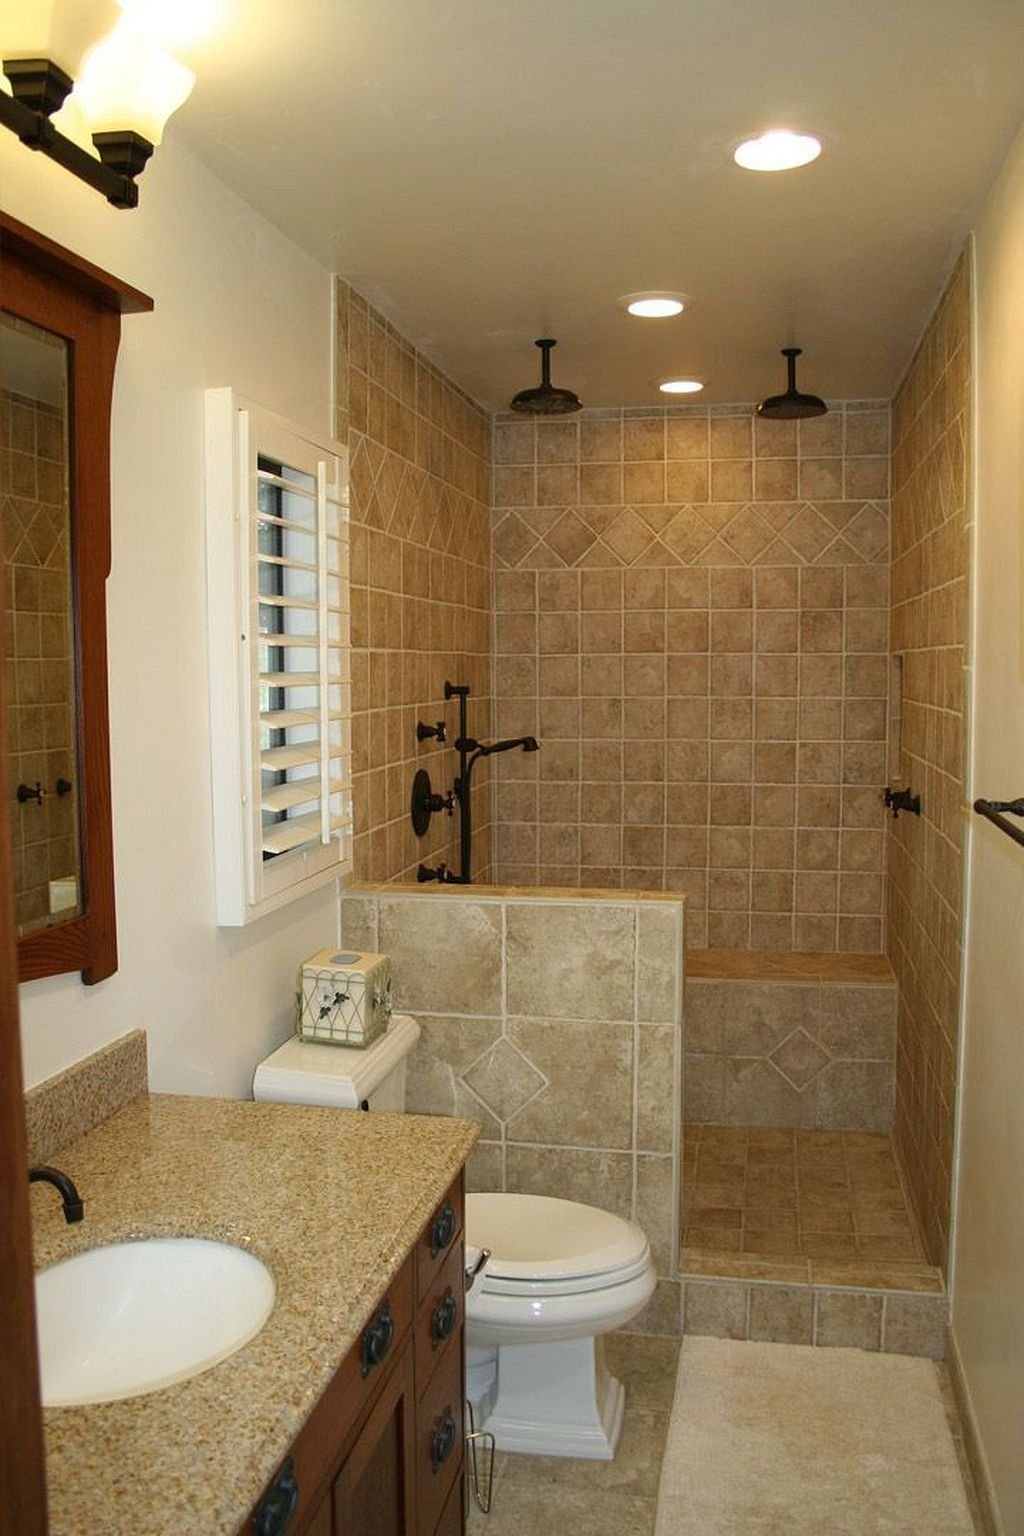 Insanely Cool Small Master Bathroom Remodel Ideas On A Budget 45 Small Bathroom Makeover Small Space Bathroom Small Bathroom